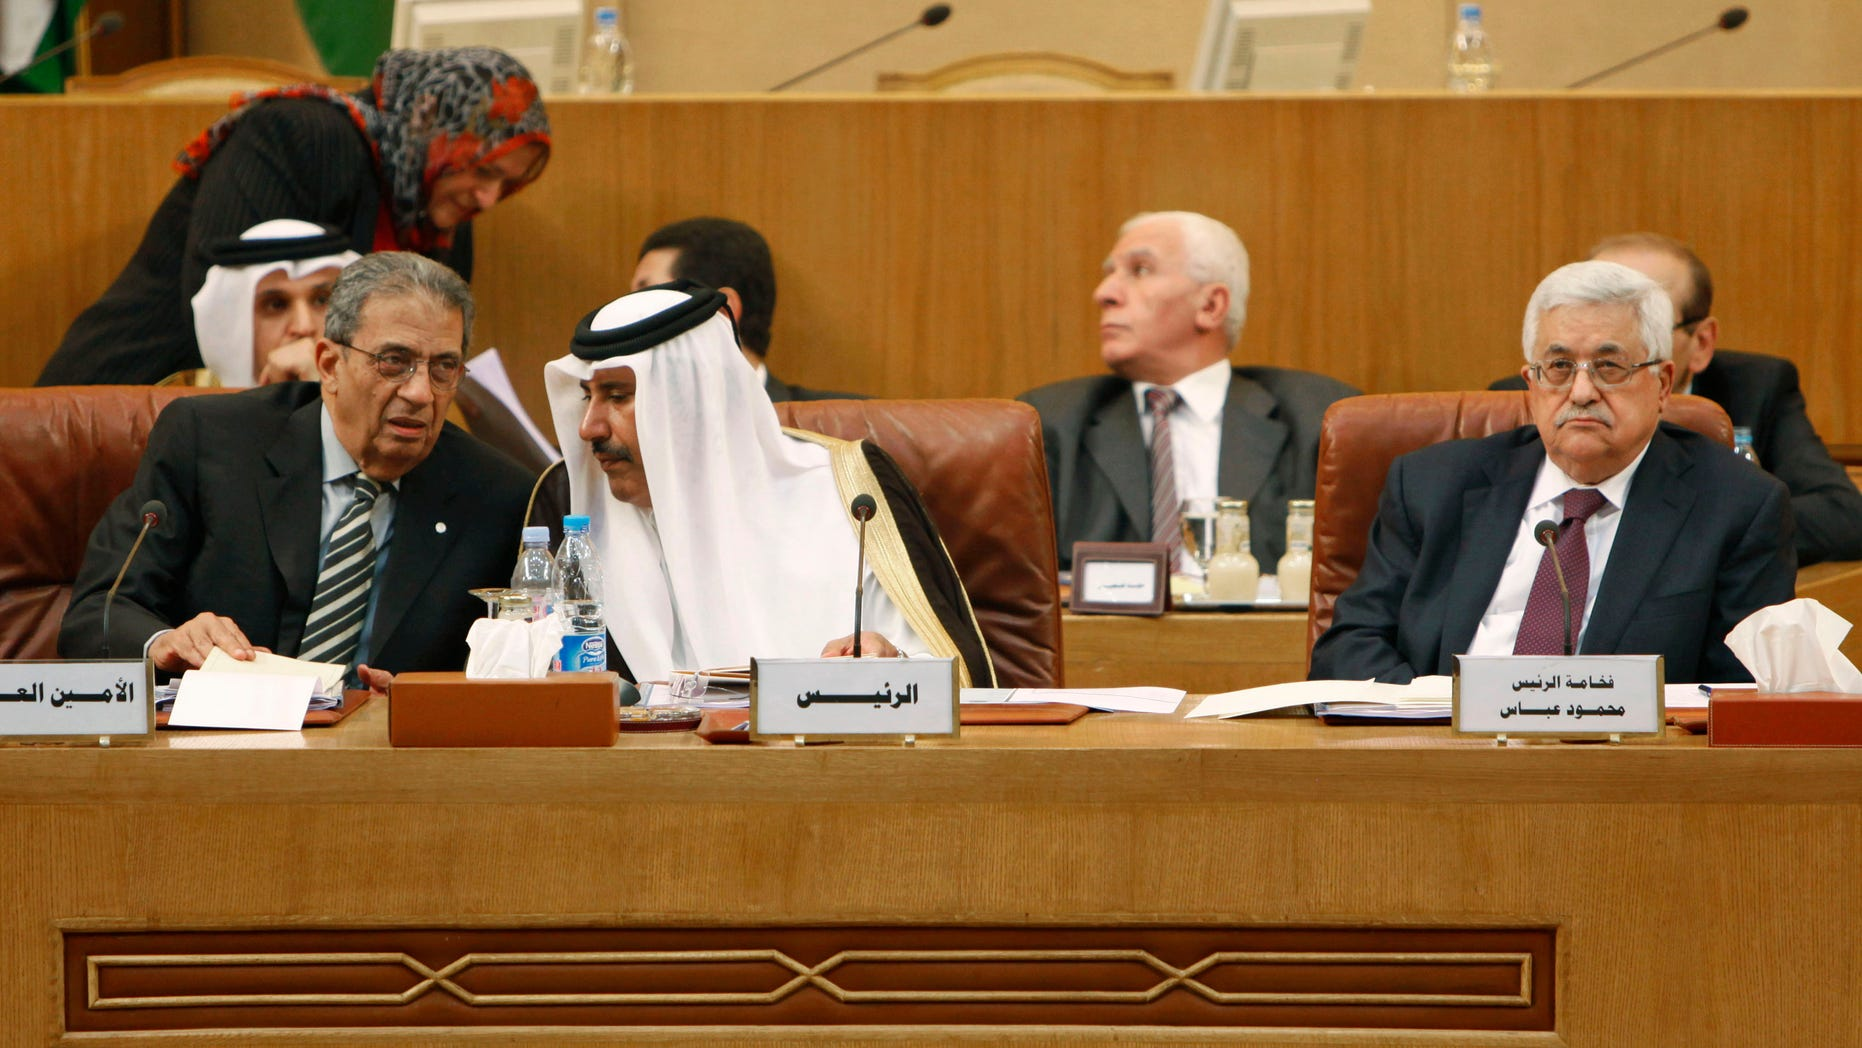 Dec. 15: Front from left, Arab League Secretary General Amr Moussa, Qatari Prime Minister Sheikh Hamad bin Jassem al-Thani and Palestinian Authority President Mahmoud Abbas at the Arab League headquarters in Cairo, Egypt. Amr Moussa says he senses that neither north nor south Sudan have any desire to return to war, ahead of a referendum that could split the country.